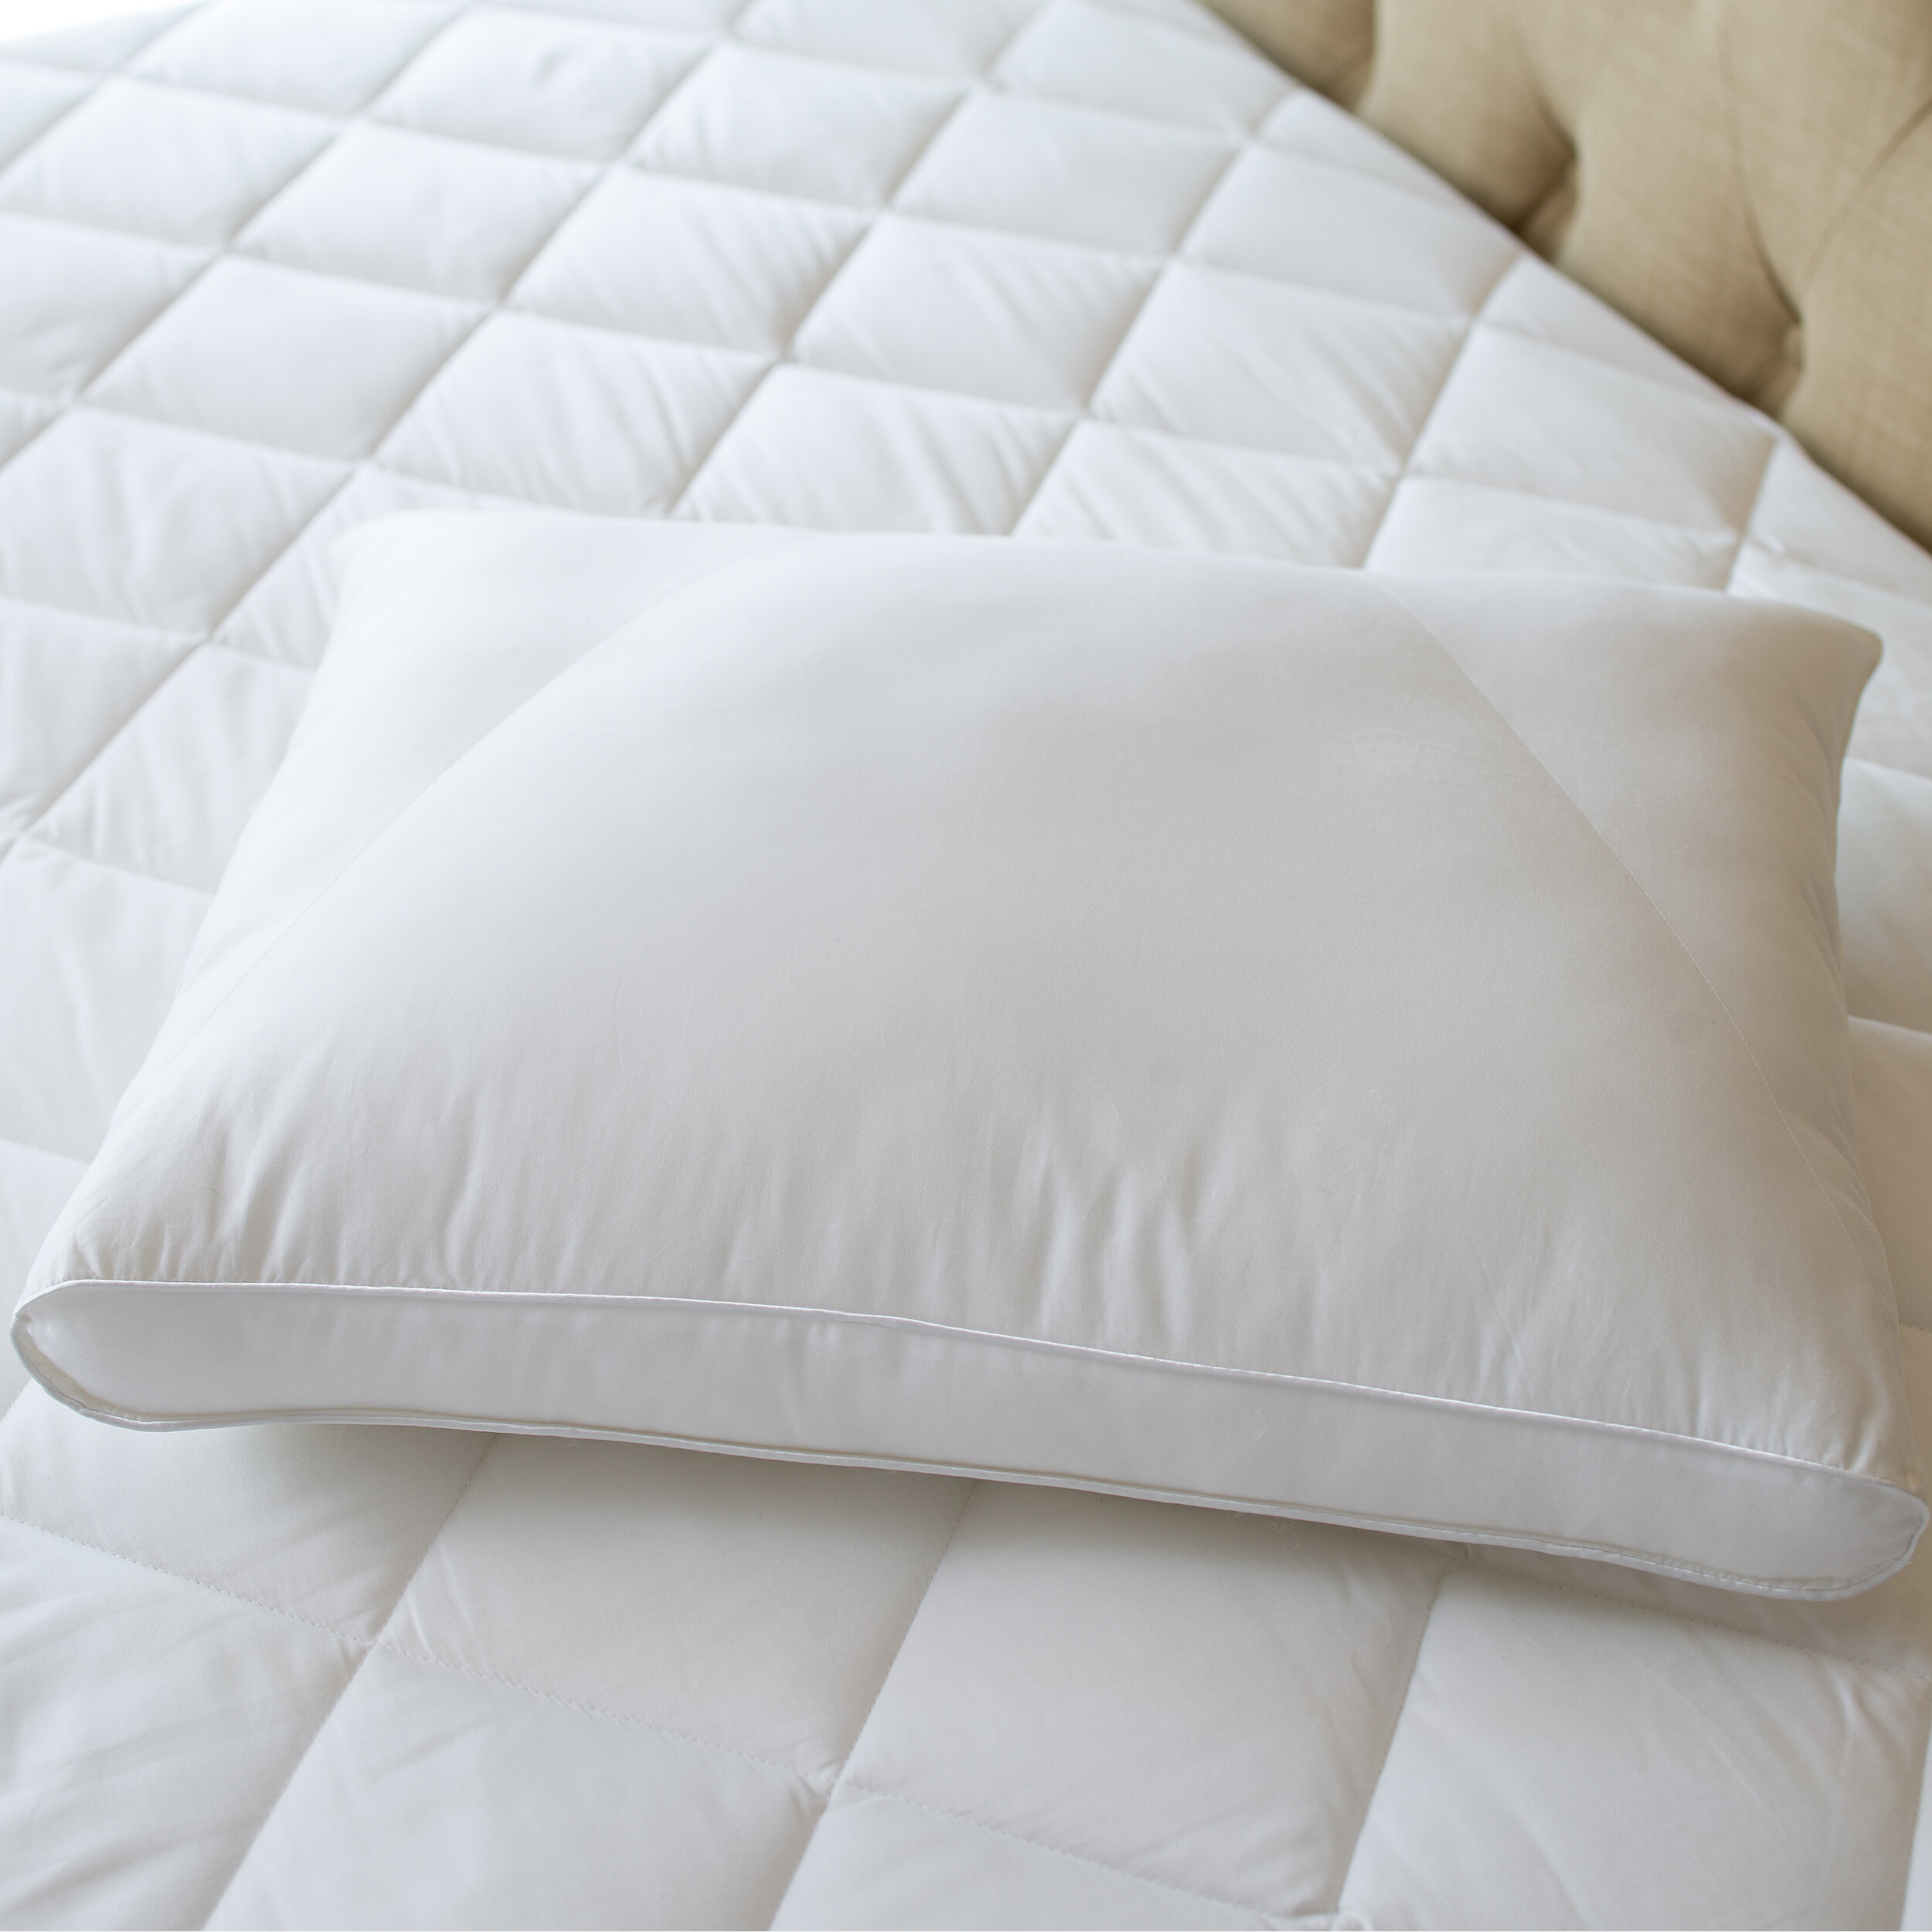 the choose best sleeper pillow com side in for to reviews sidesleeperguide sleepers how